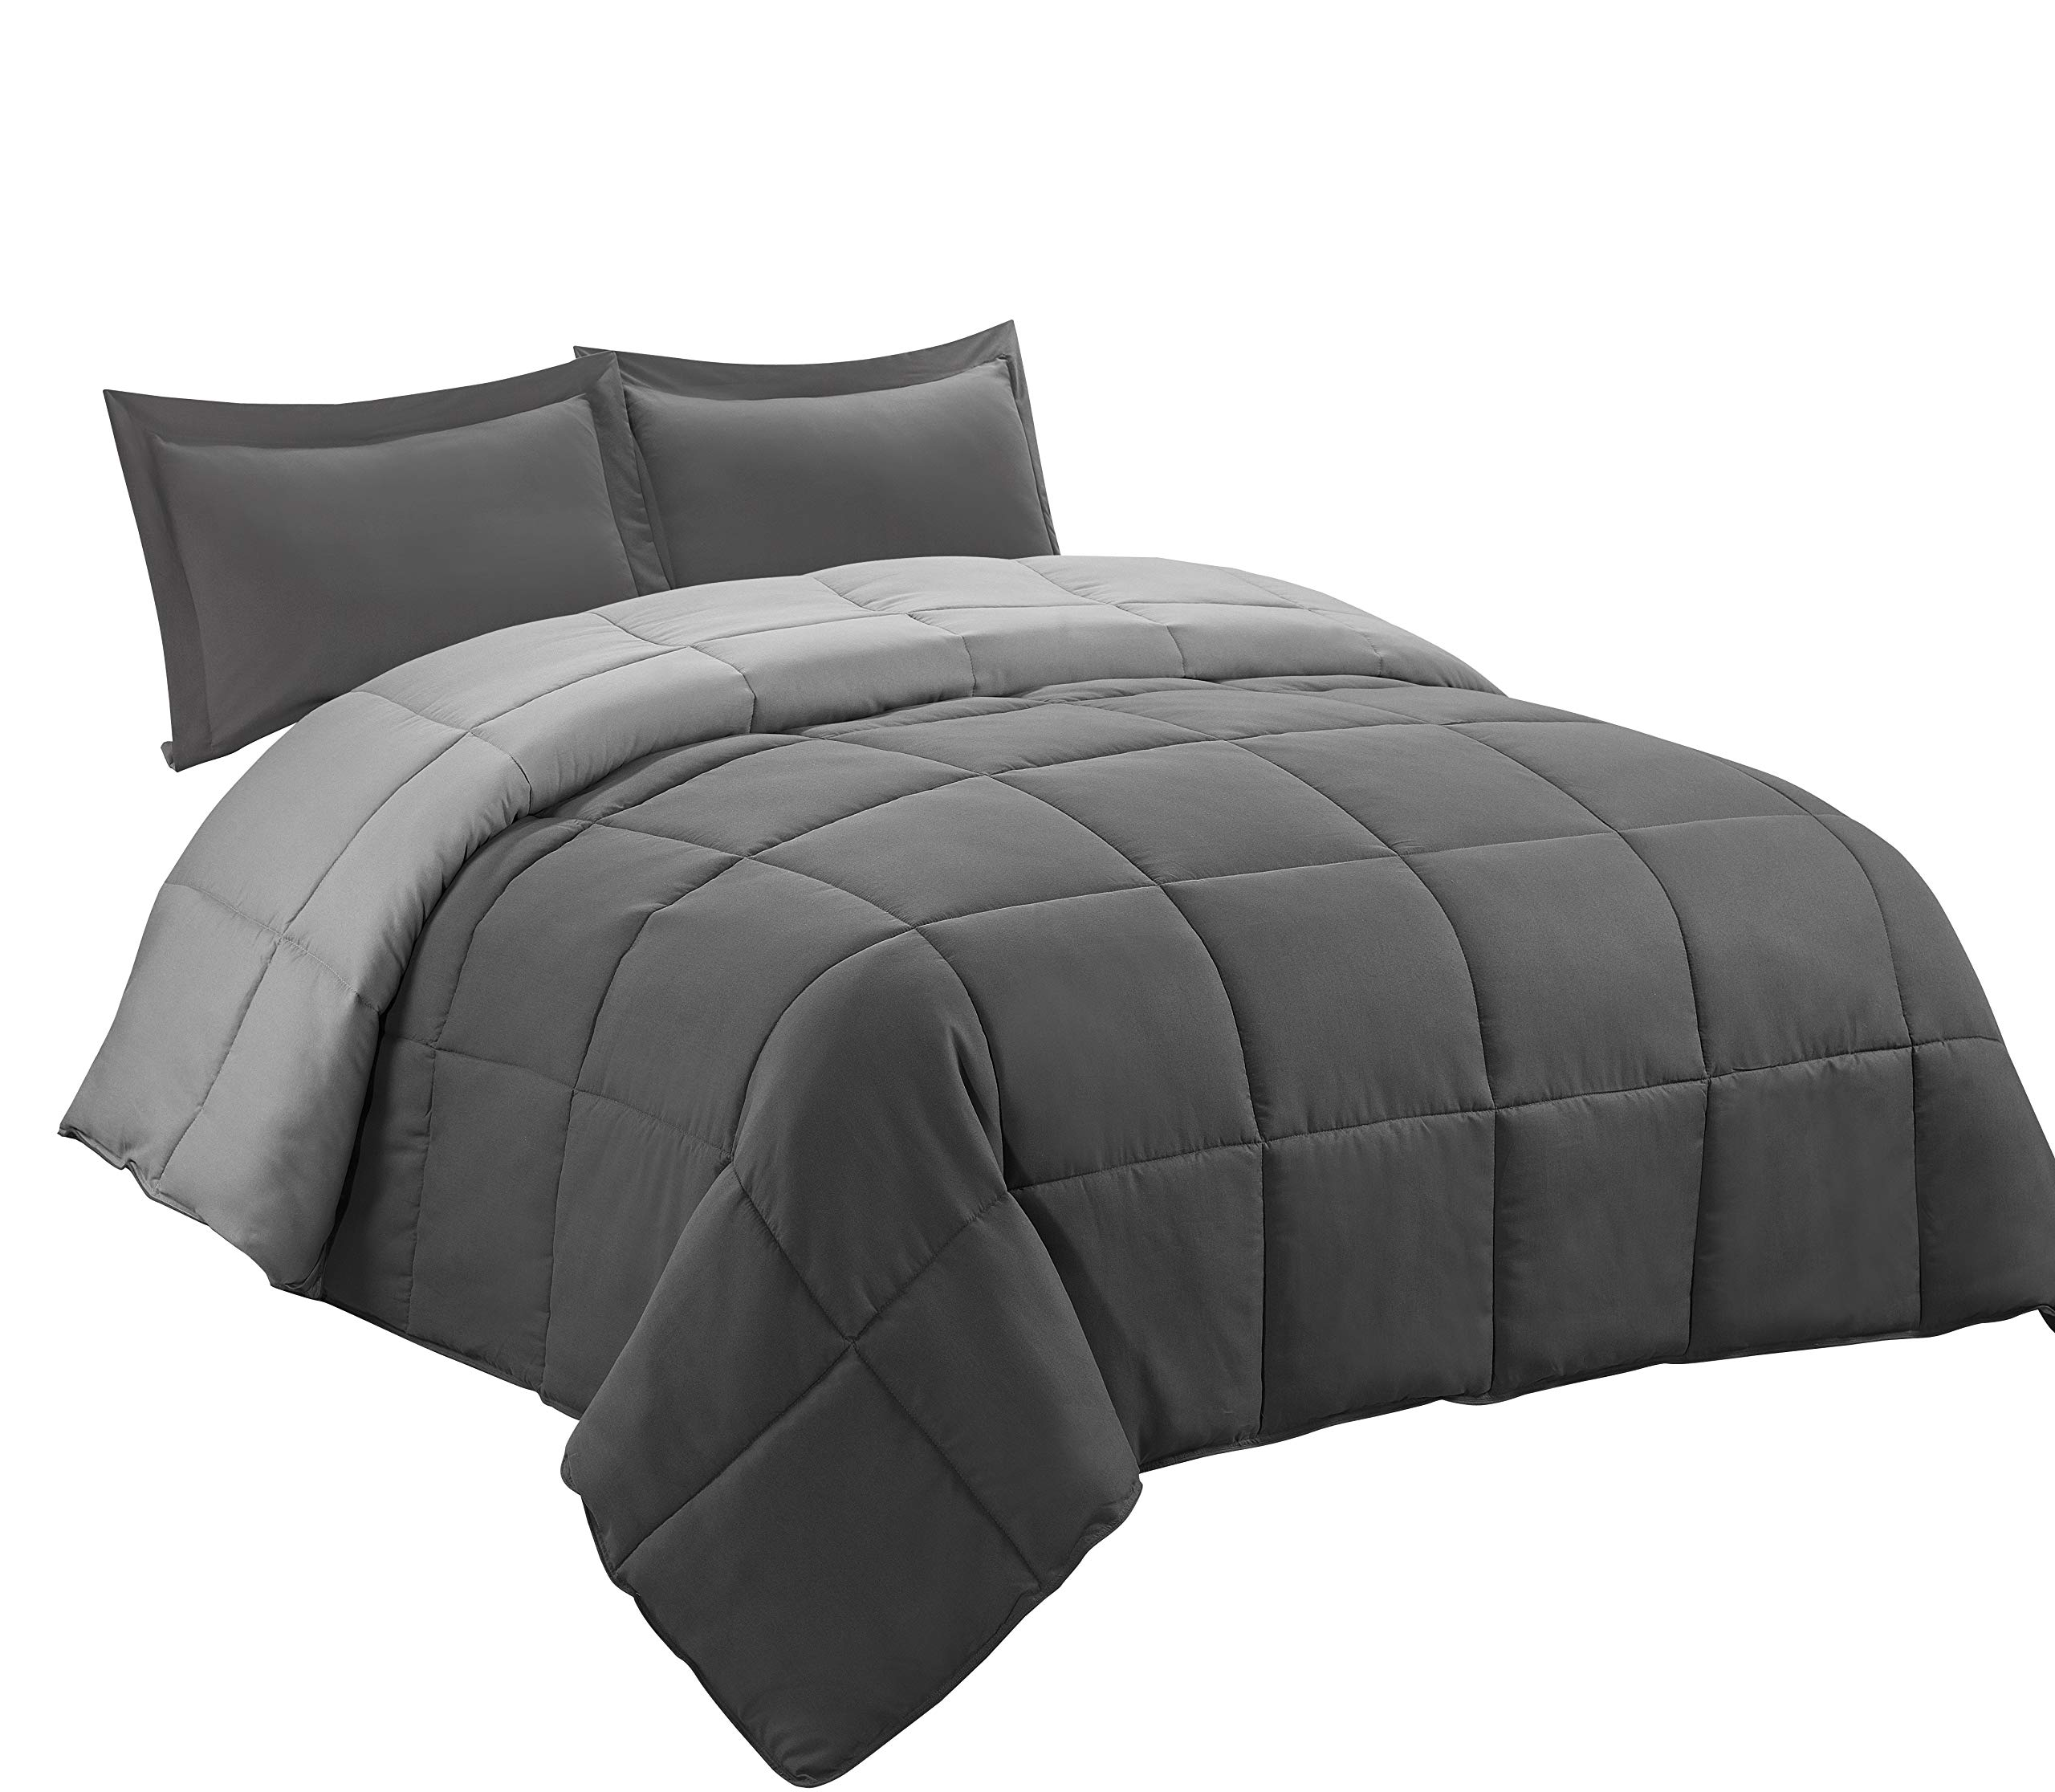 3pc Down Alternative Comforter Set -All Season Reversible Comforter with Two Shams - Quilted Duvet Insert with Corner Tabs -Box Stitched –Hypoallergenic, Soft, Fluffy (Full/Queen, Dark Gray/LightGray)